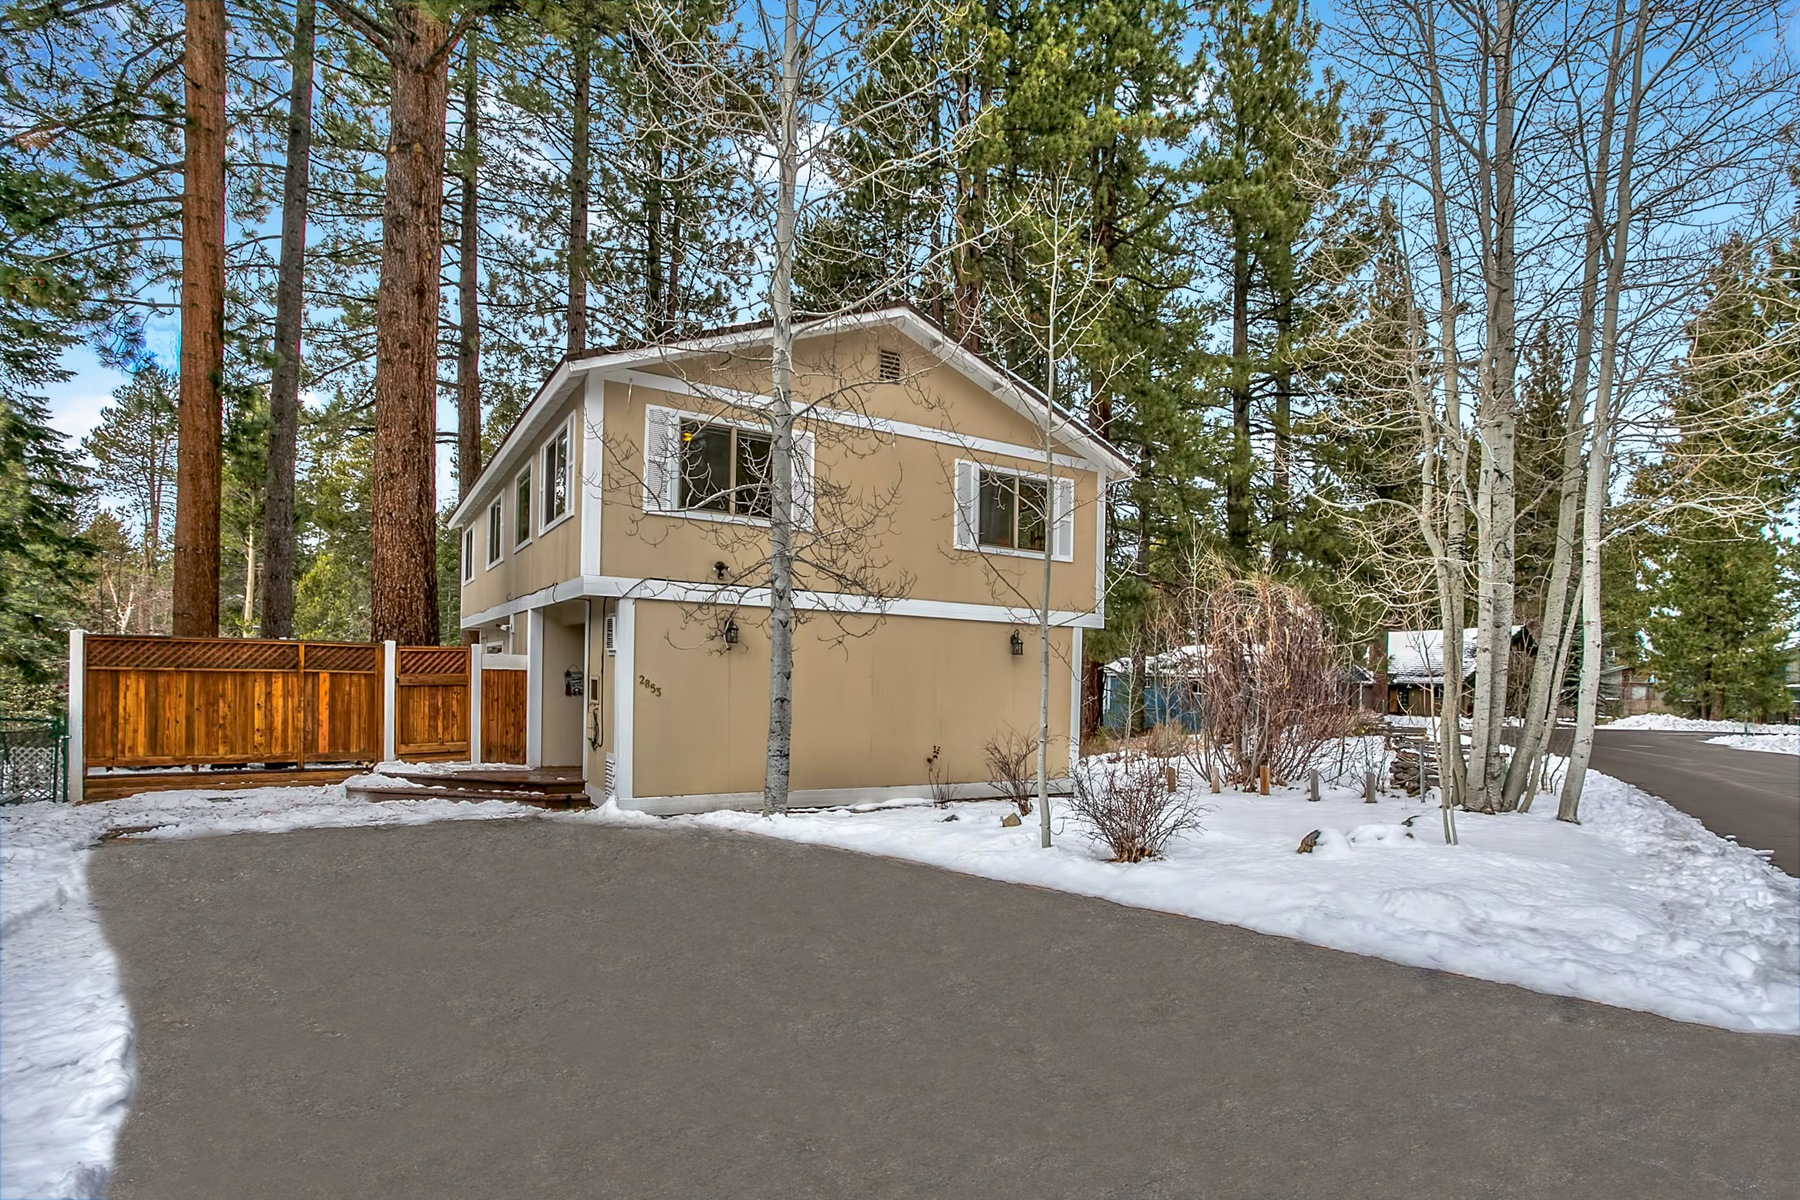 Villa per Vendita alle ore 2853 Springwood Drive South Lake Tahoe, California, 96150 Stati Uniti